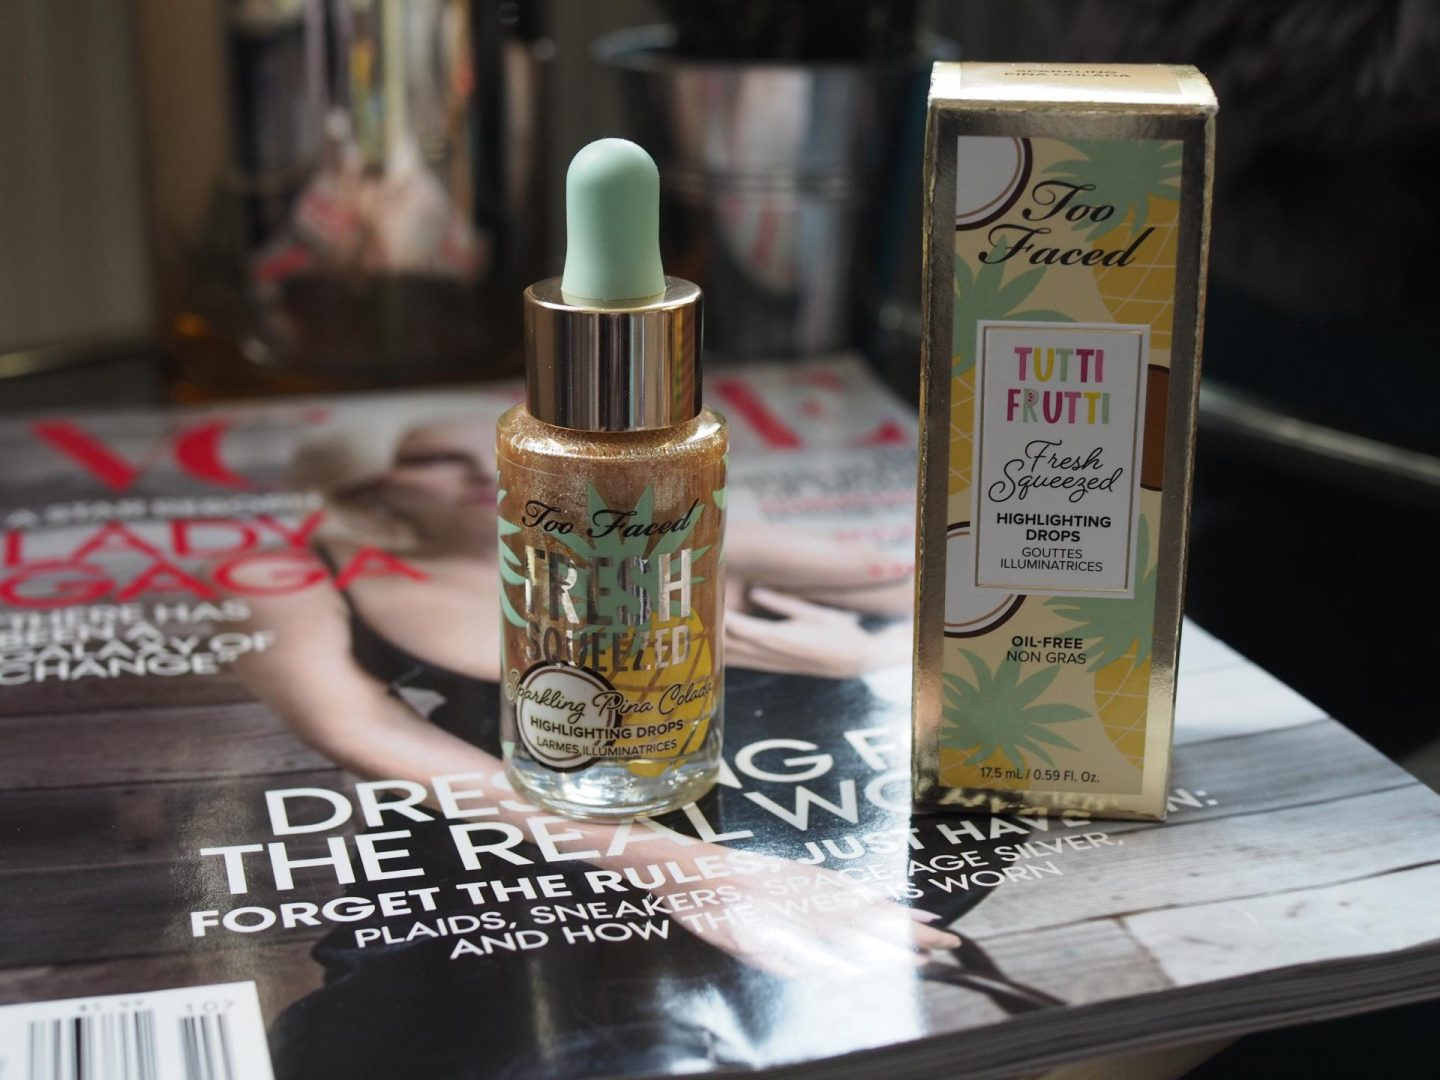 Too Faced Tutti Frutti Freshly Squeezed Highlighting Drops